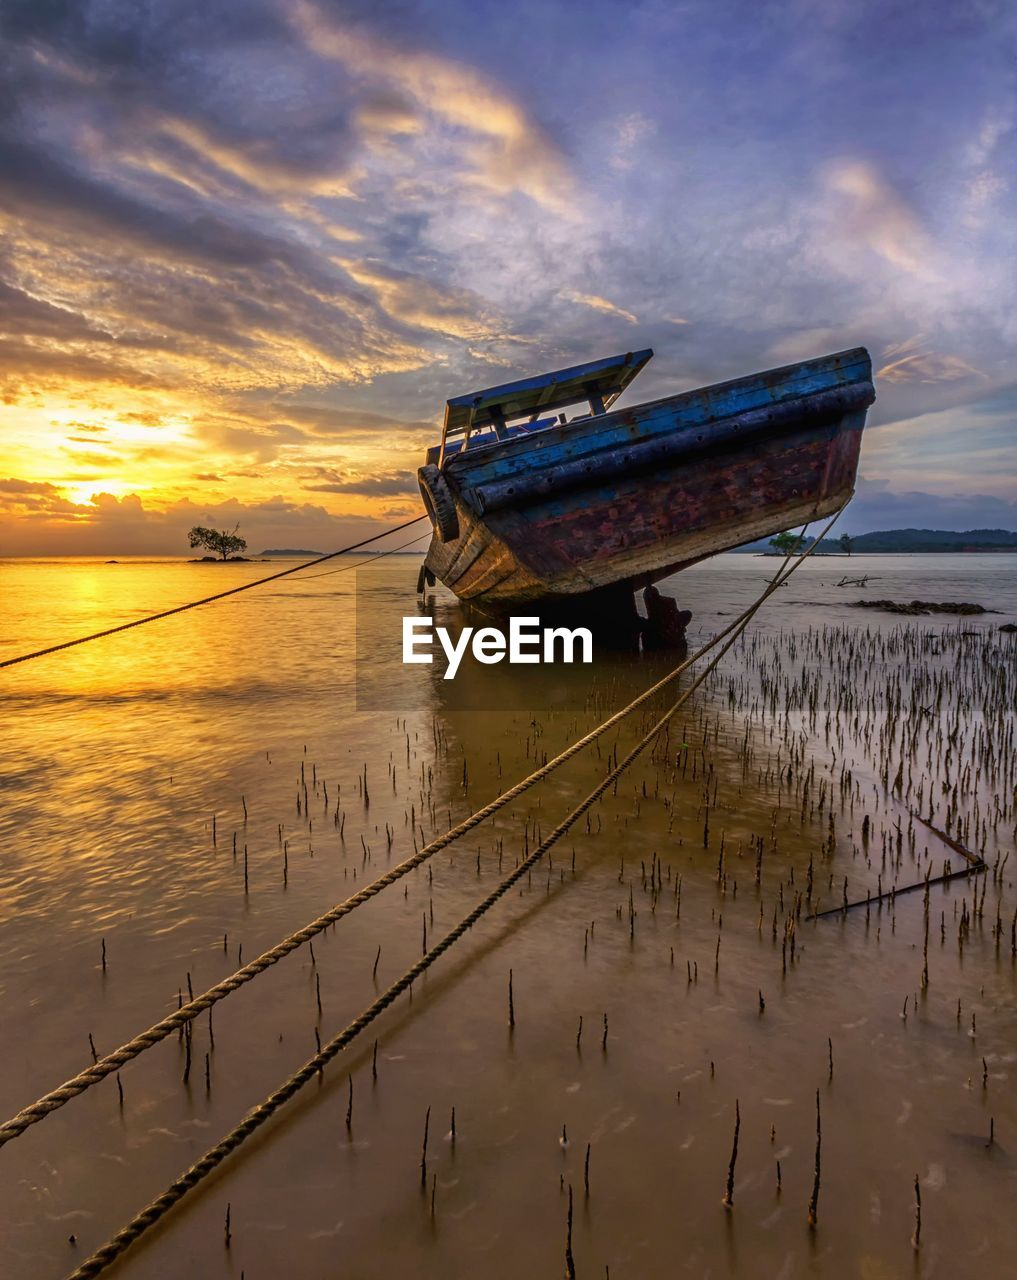 water, nautical vessel, sunset, sky, transportation, cloud - sky, mode of transportation, sea, reflection, nature, moored, beauty in nature, scenics - nature, abandoned, no people, tranquility, travel, ship, orange color, horizon over water, outdoors, sinking